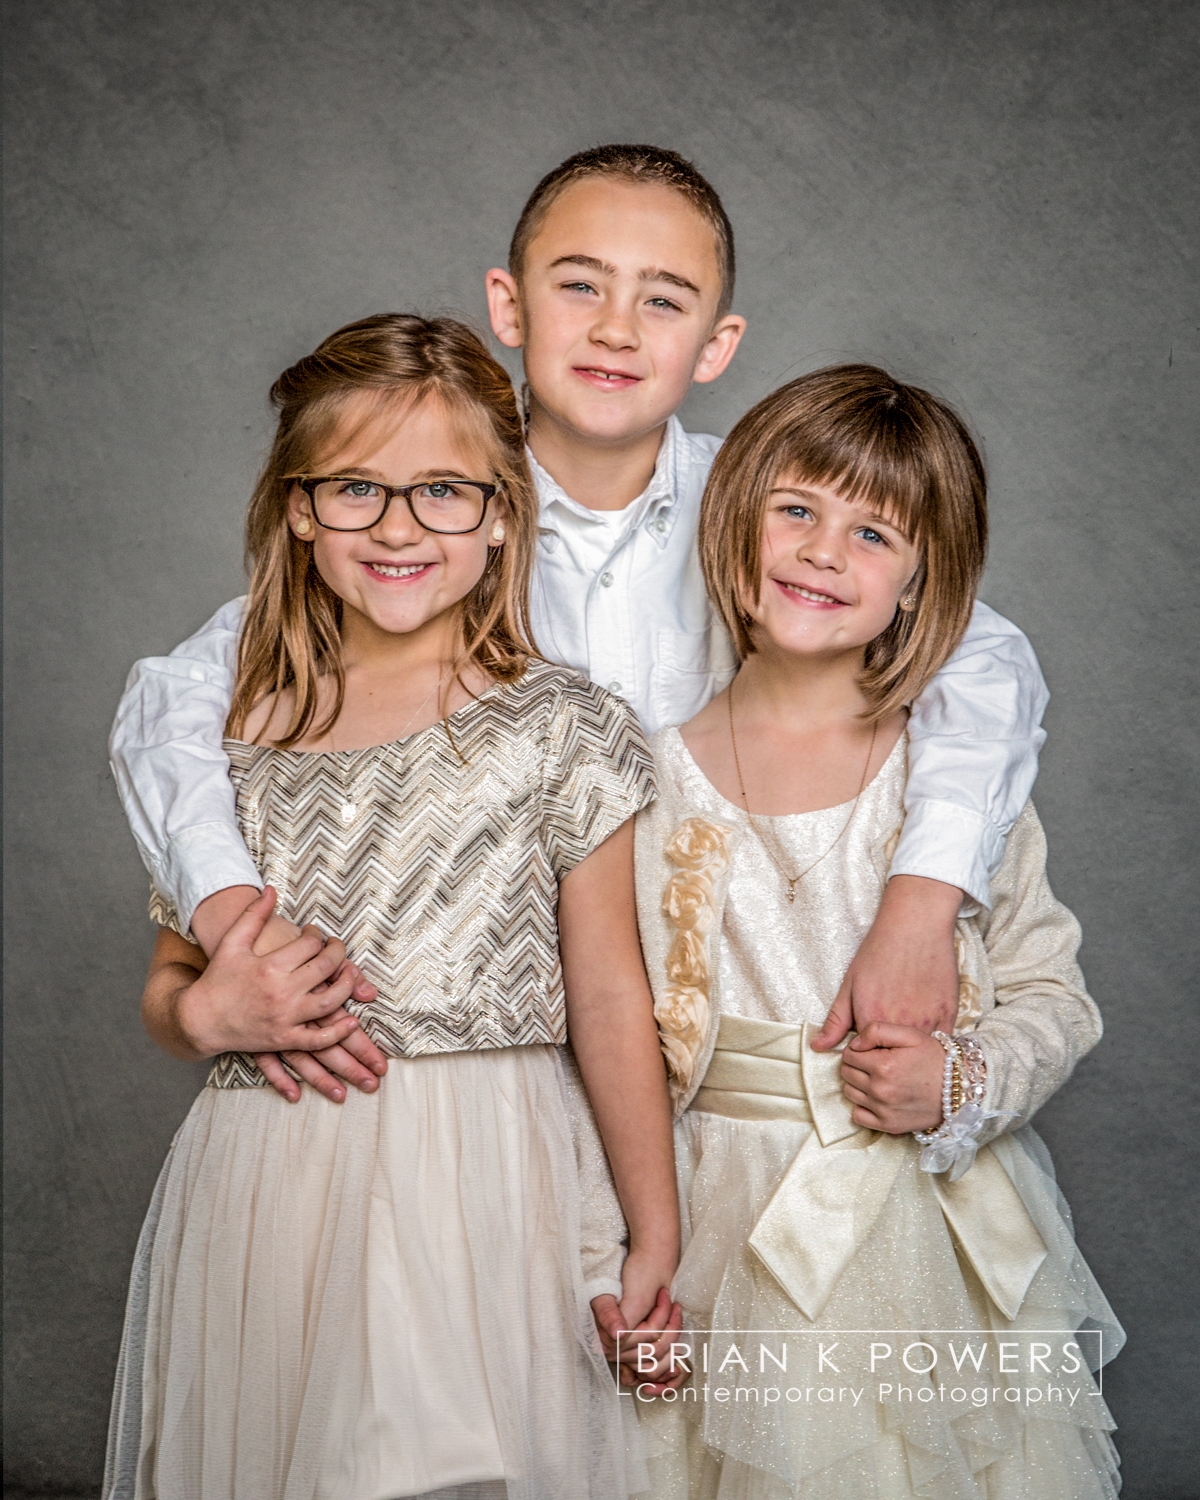 Portrait-Website McBride-Family_portrait_with_children-010.jpg